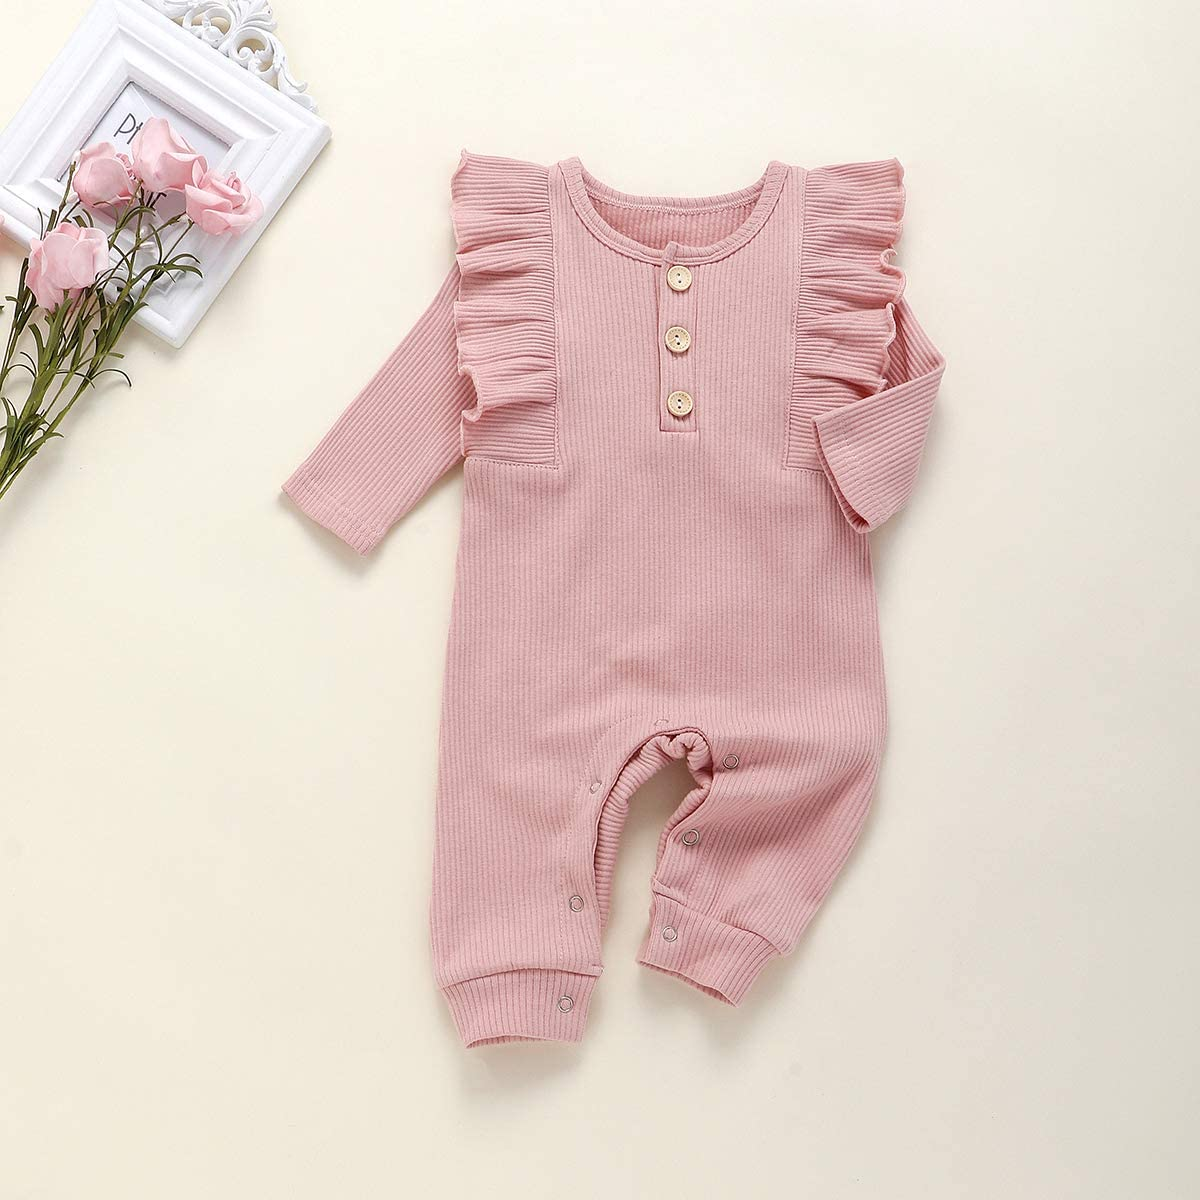 YueJia Newborn Baby Girls Clothes Romper Solid Color Ruffle Long Sleeve Knitted Infant Girl Jumpsuit Basic Bodysuit